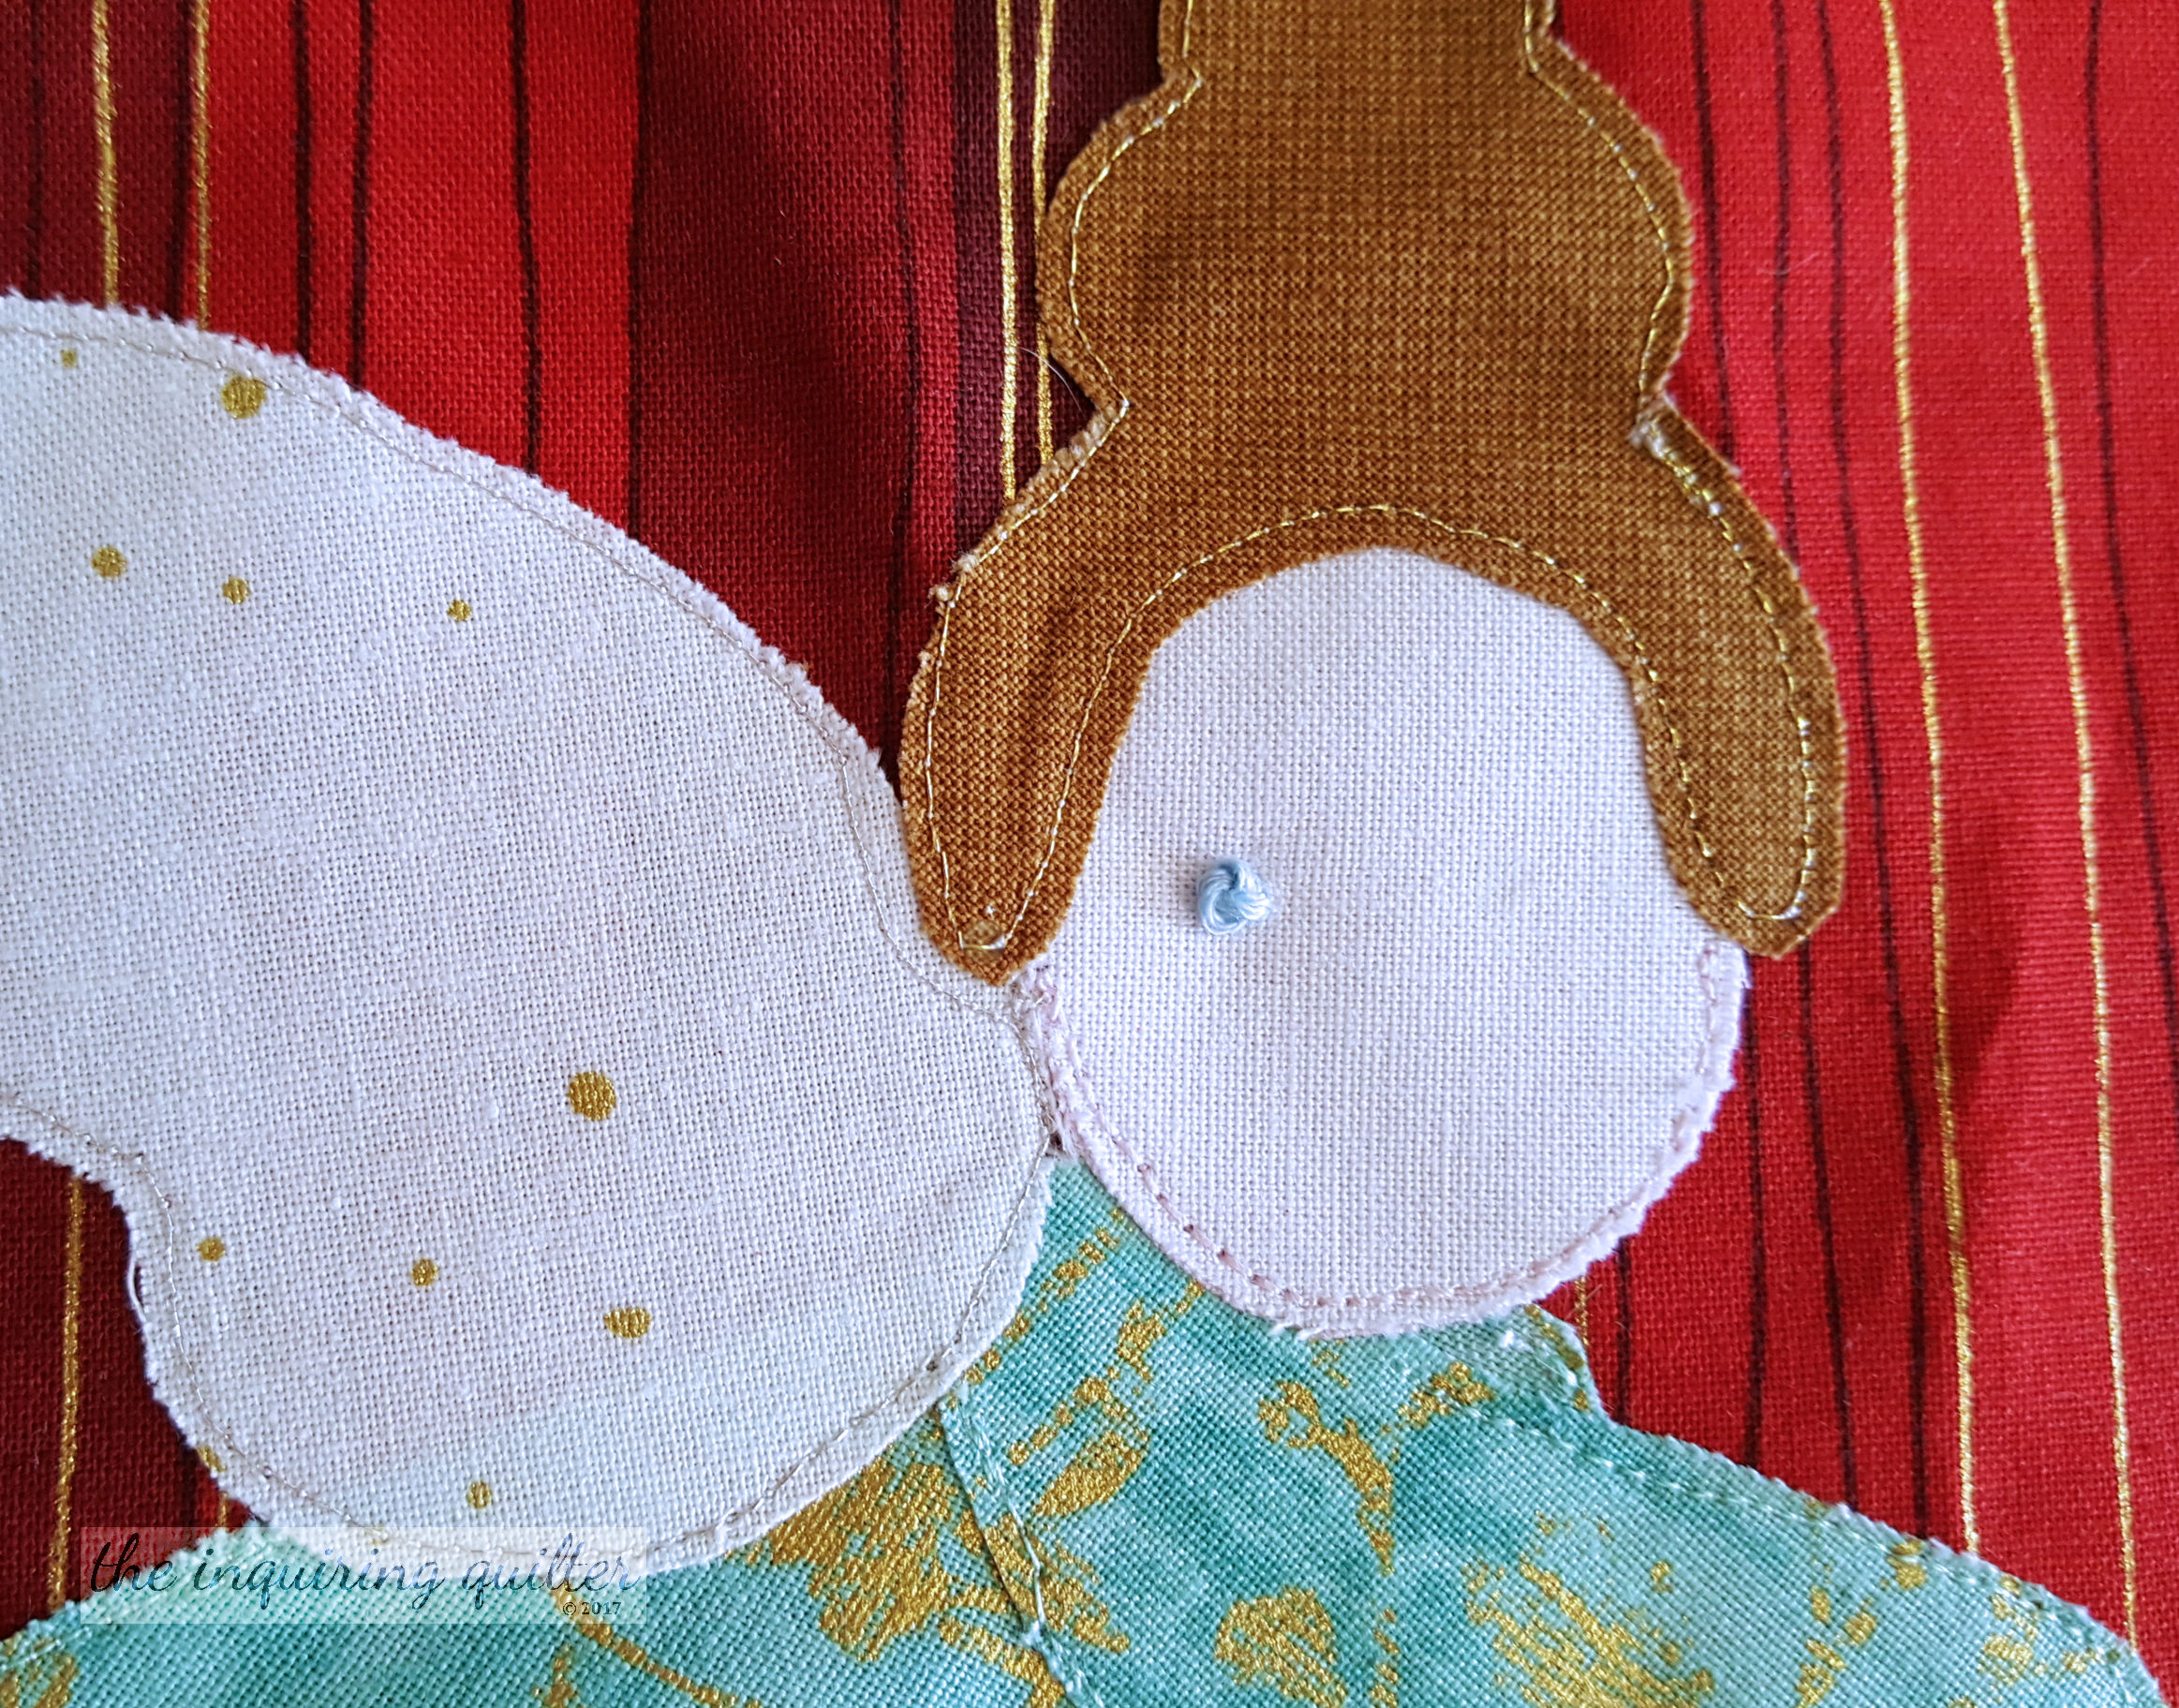 French Knot 3.jpg